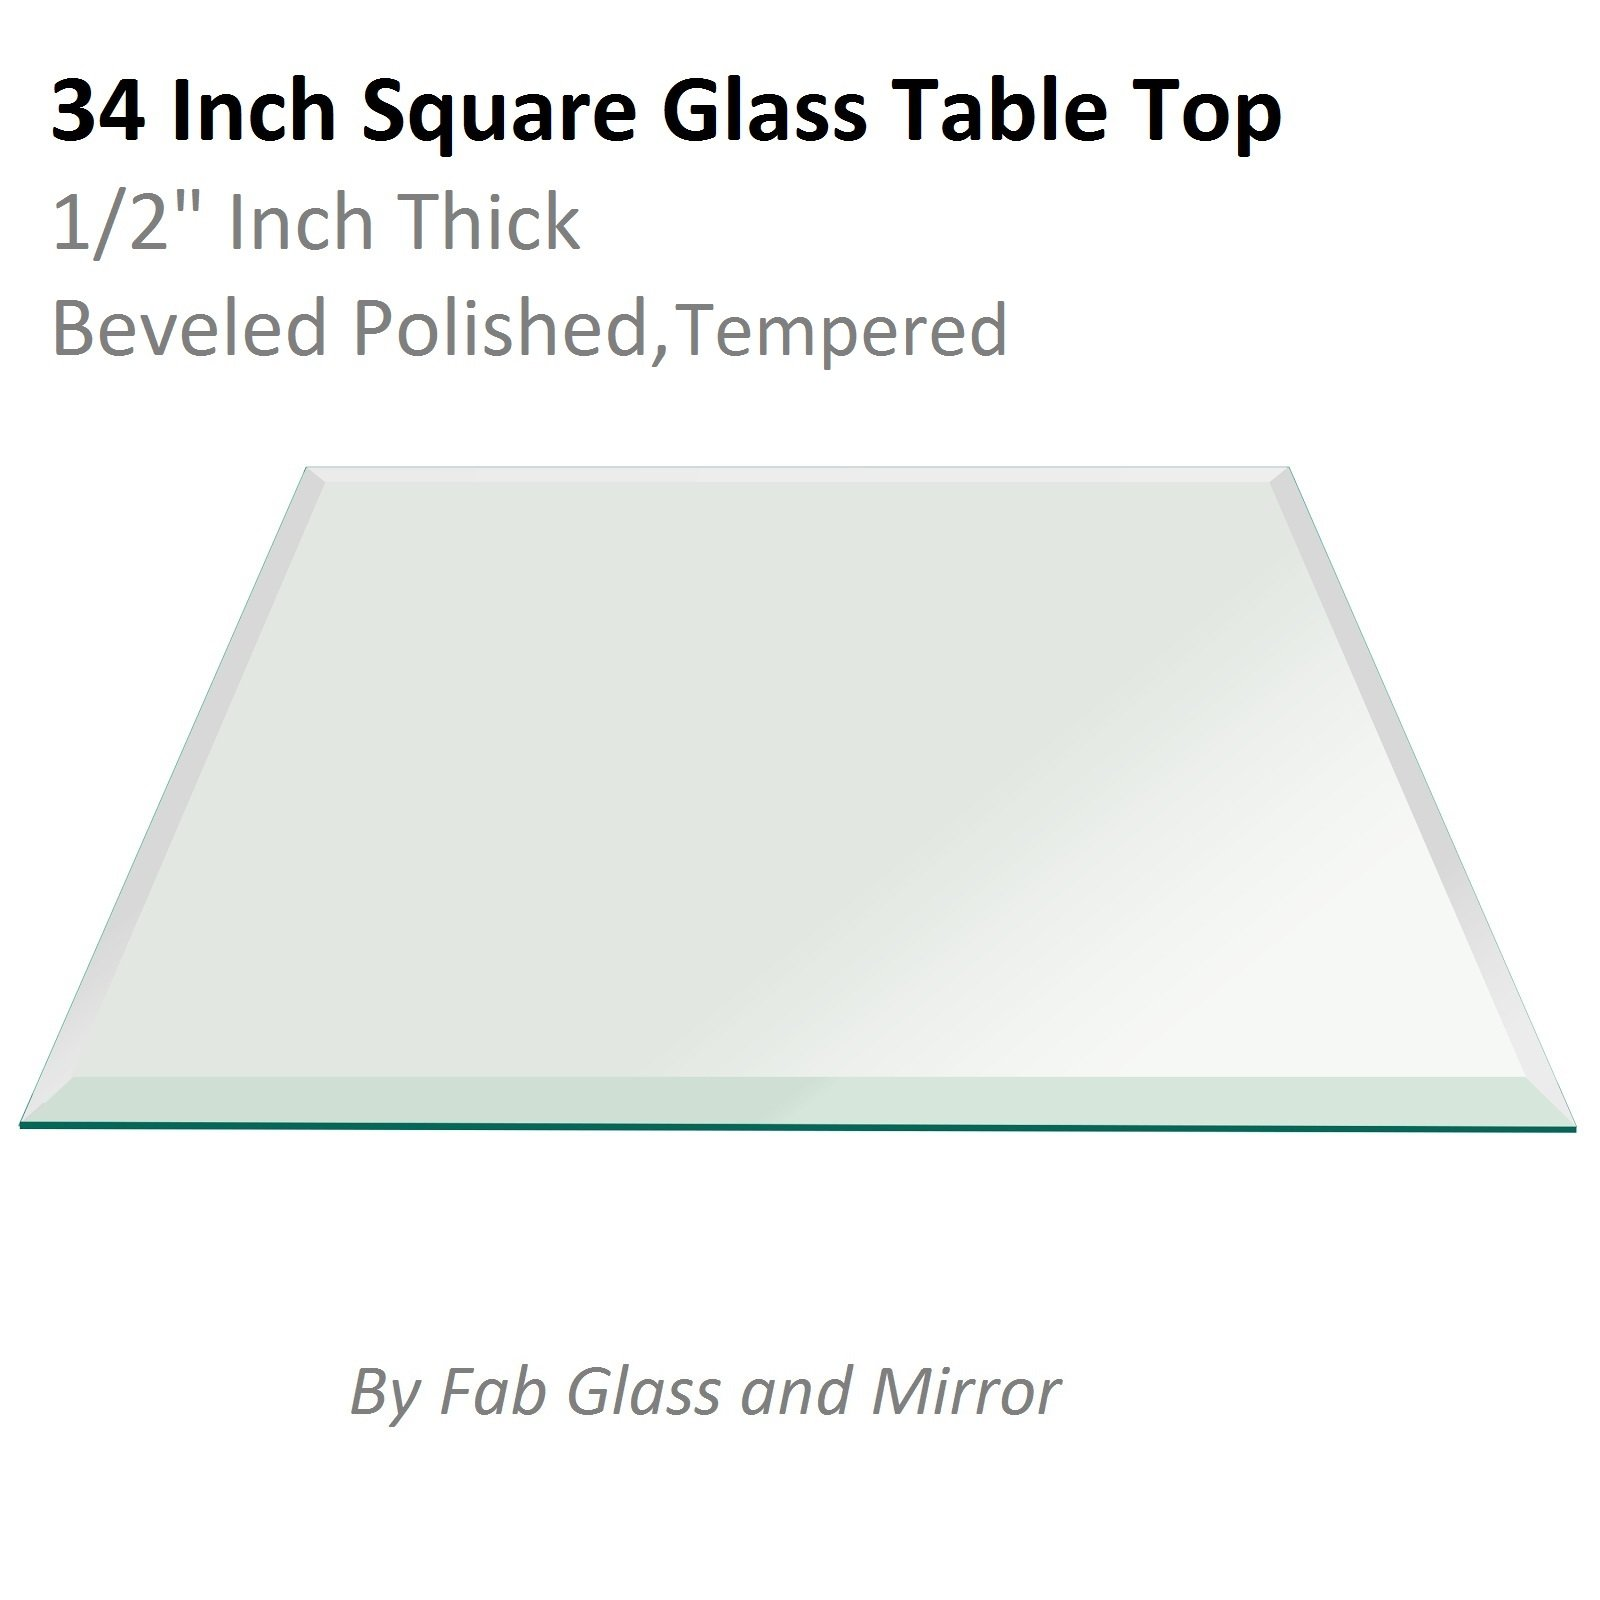 Fab Glass and Mirror Square Clear Glass Table Top 34'' Inch Tempered 1/2'' Thick Bevel Polish Radius Corners